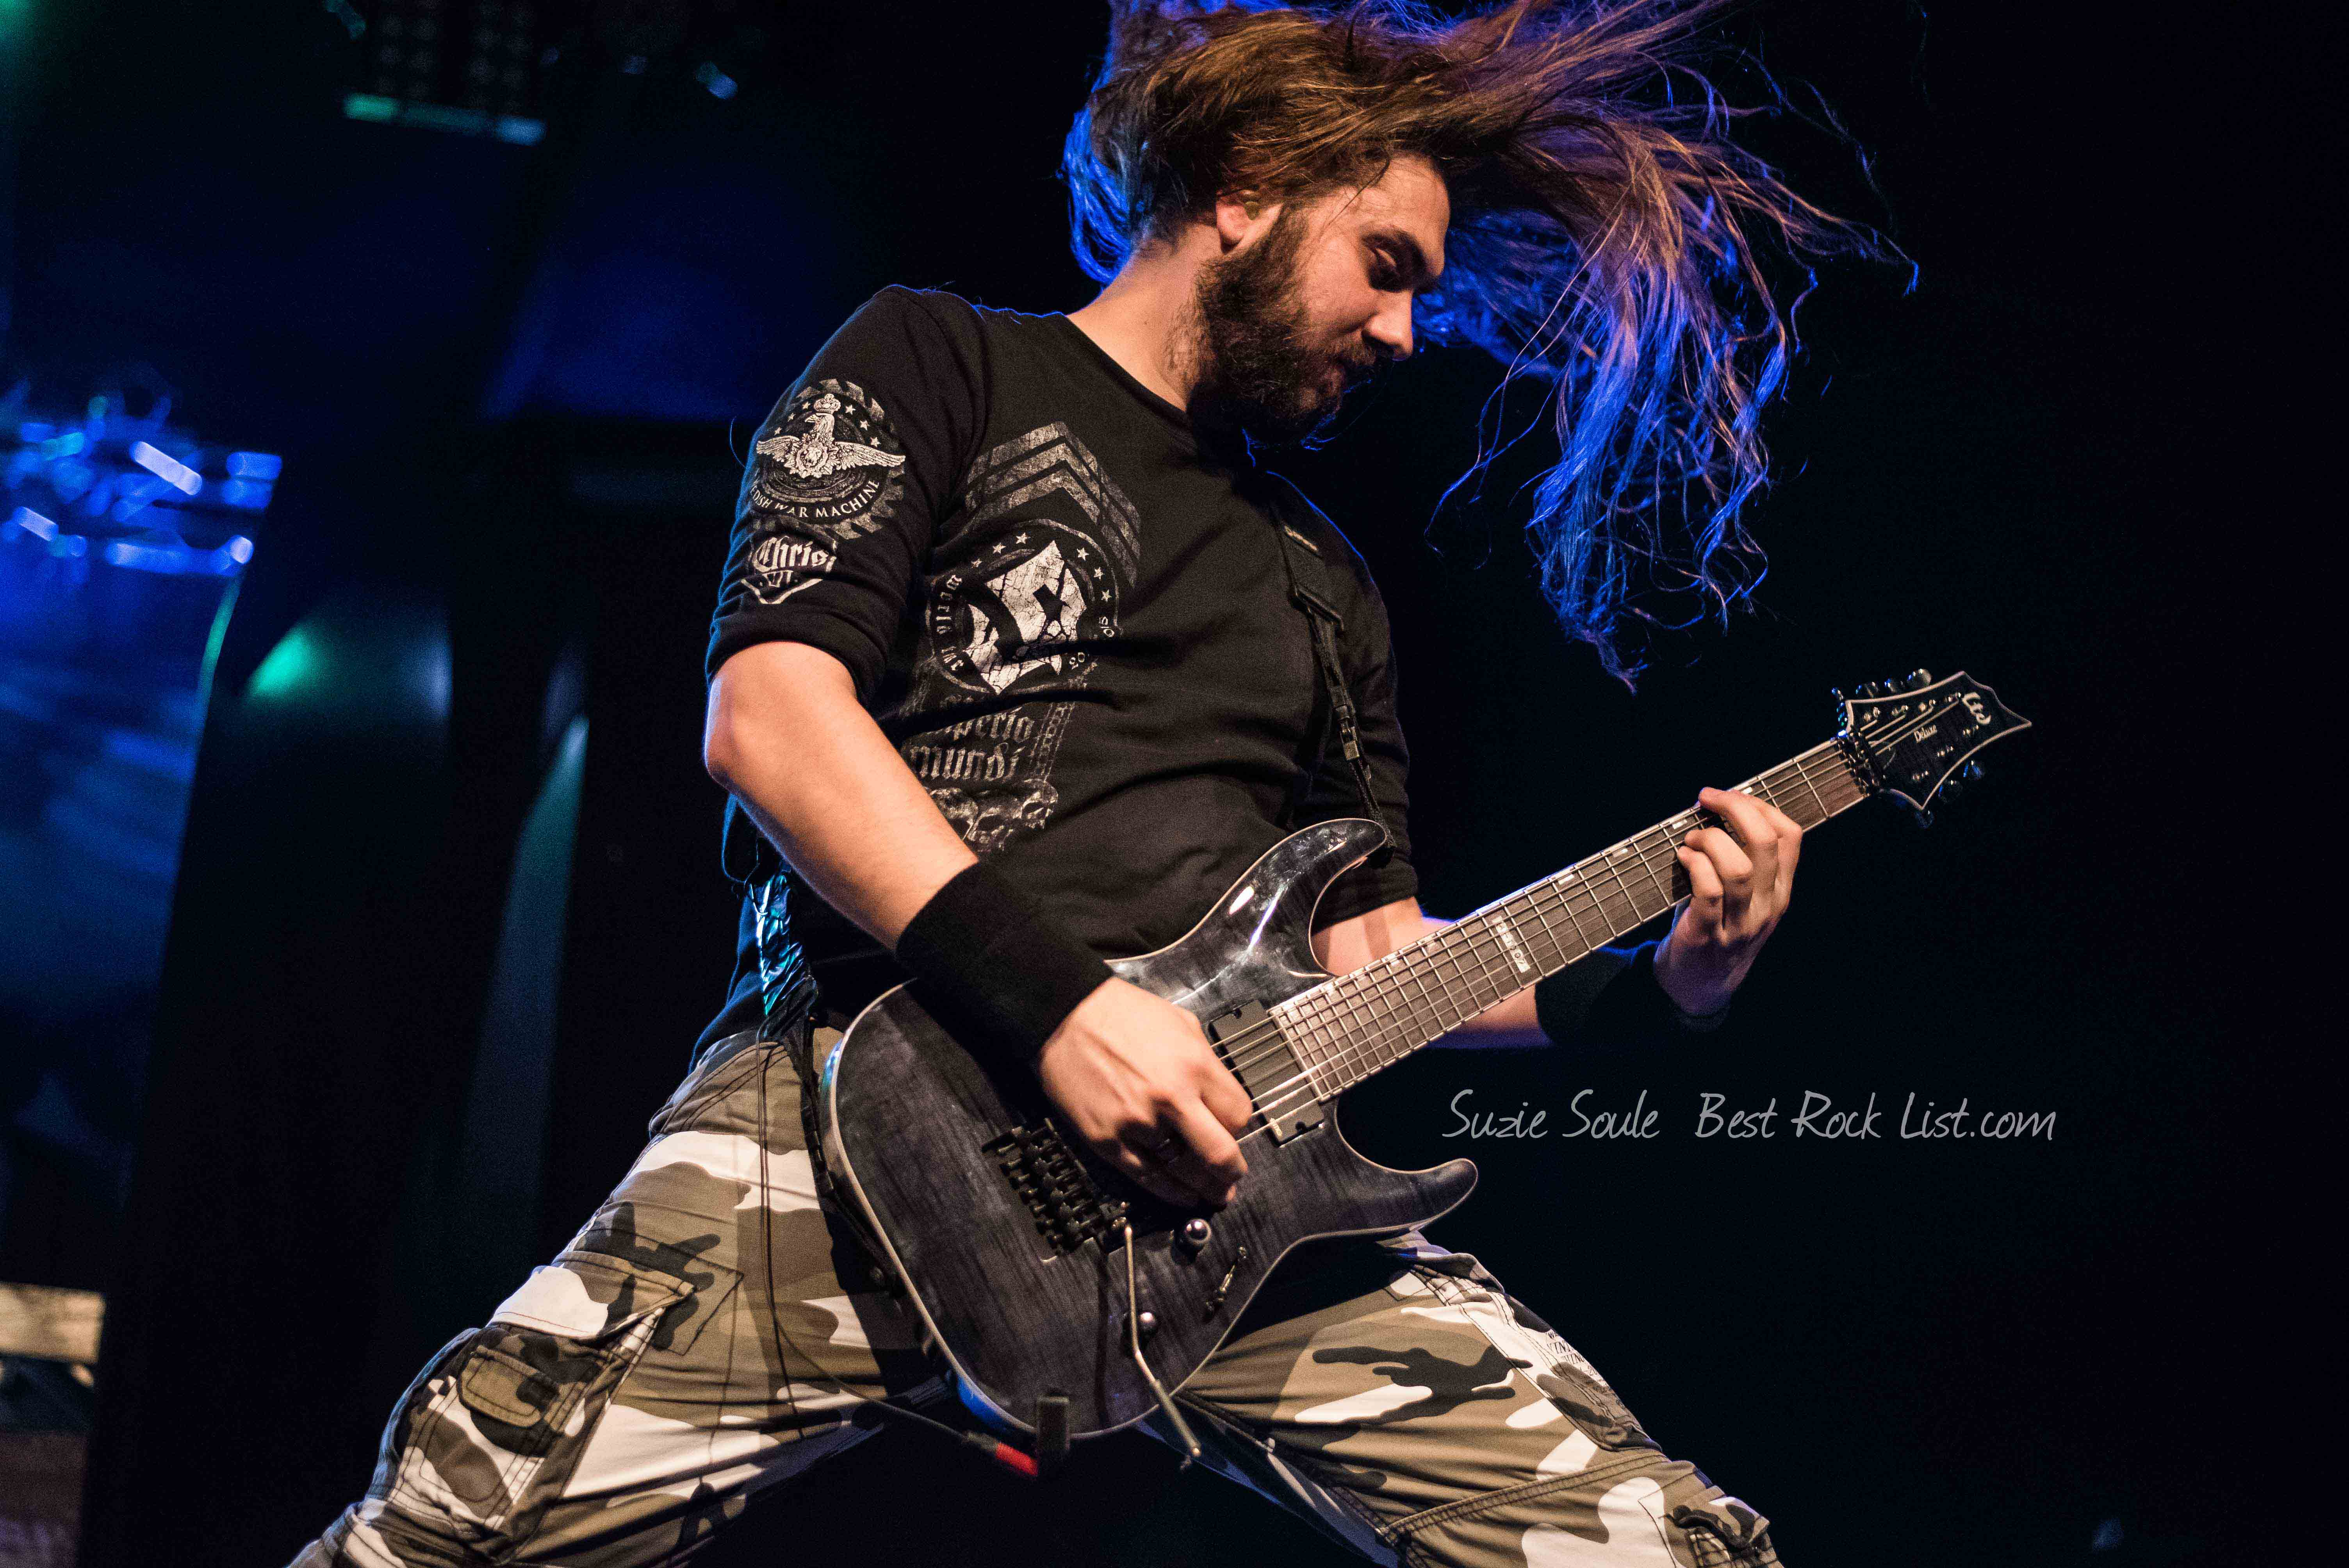 Chris Rörland of Sabaton